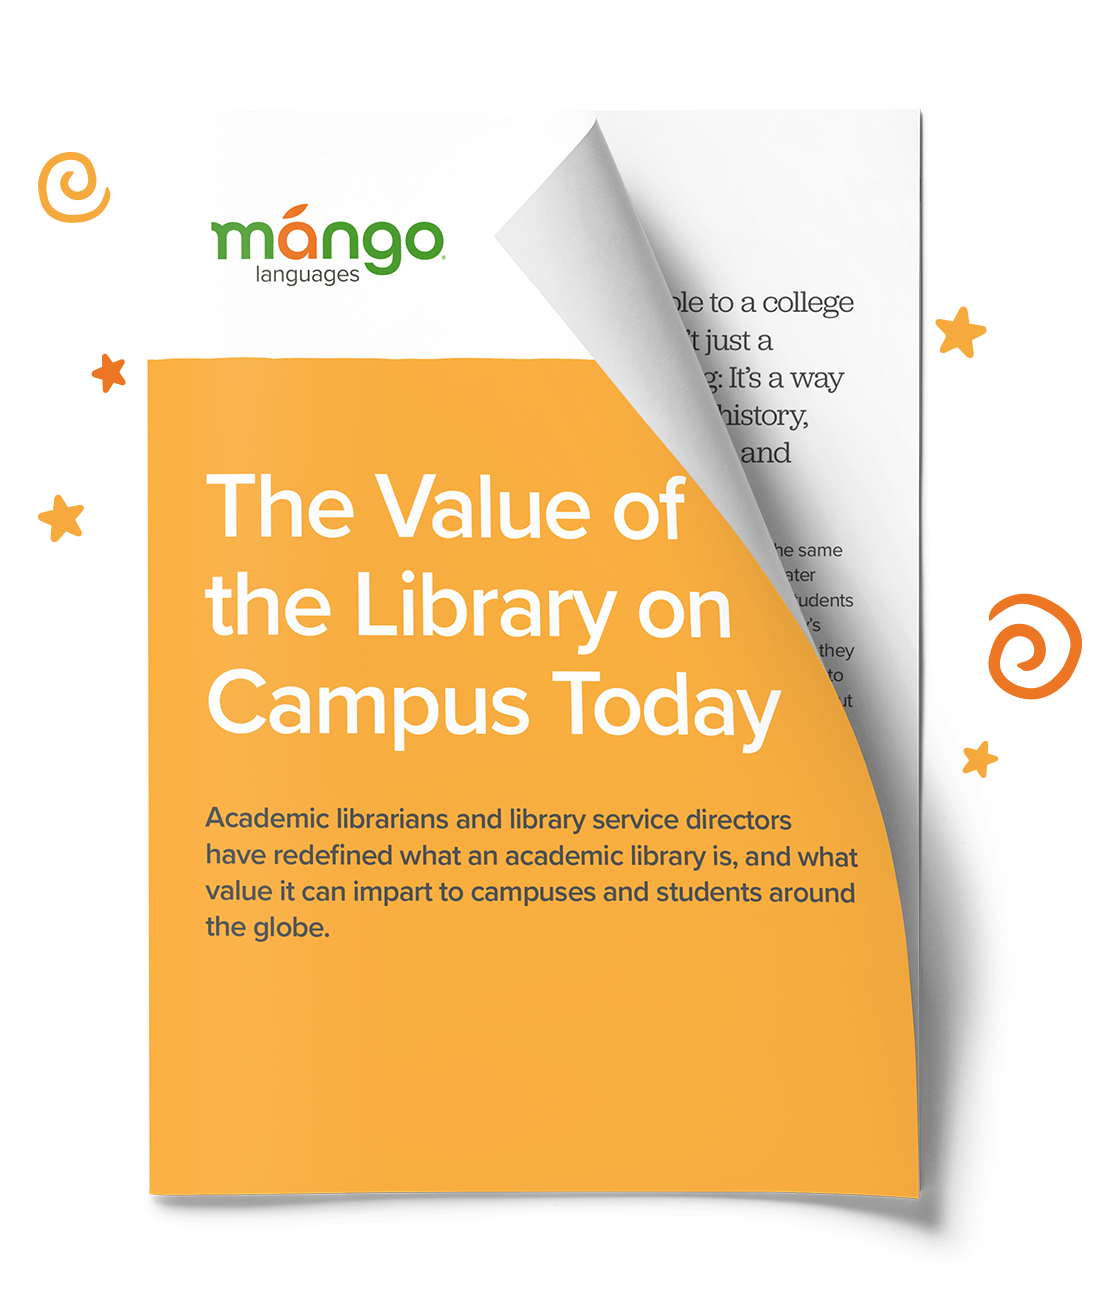 mango-inbound-value-of-library